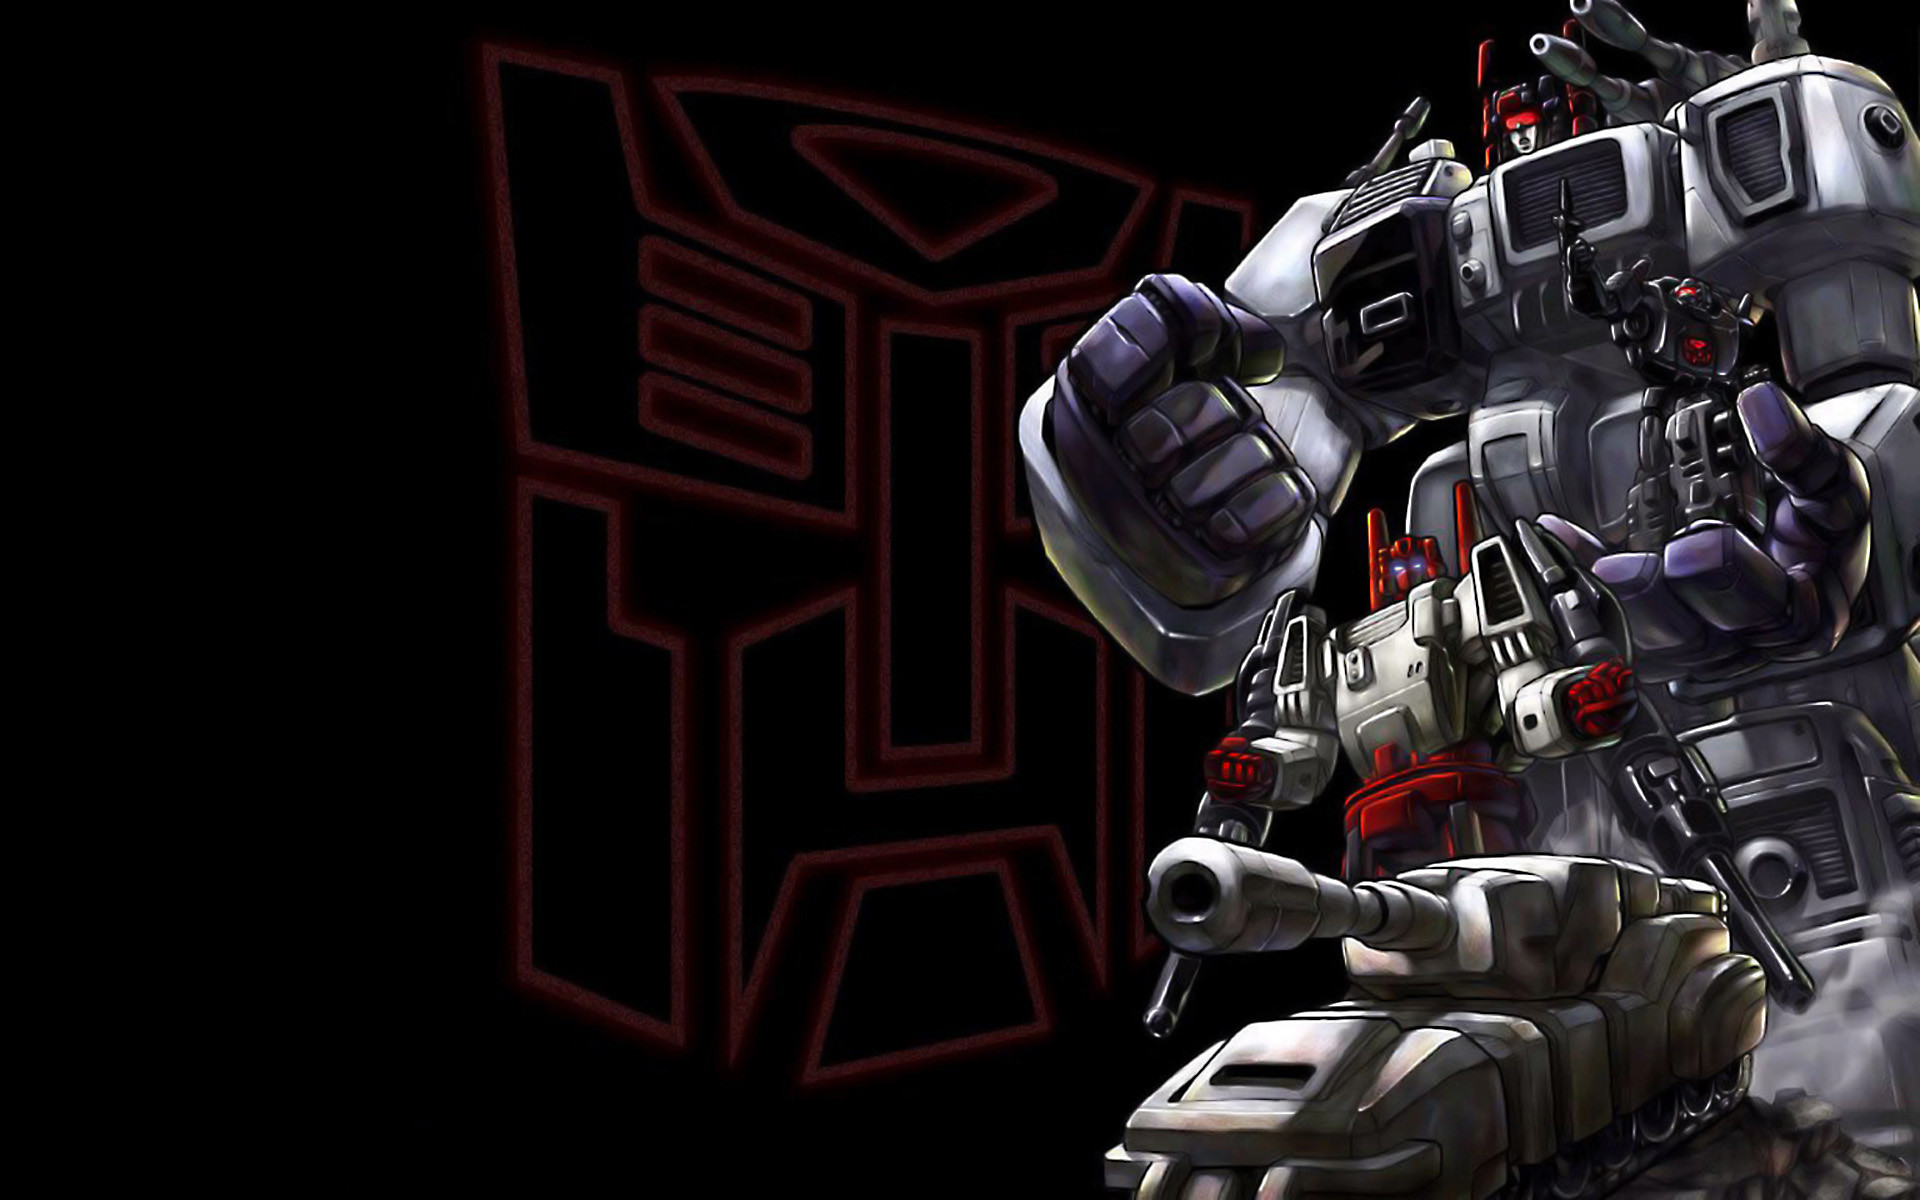 Res: 1920x1200, Image: Transformers Metroplex, pixels, gallery, black, autobots wallpapers  and stock photos. Â«